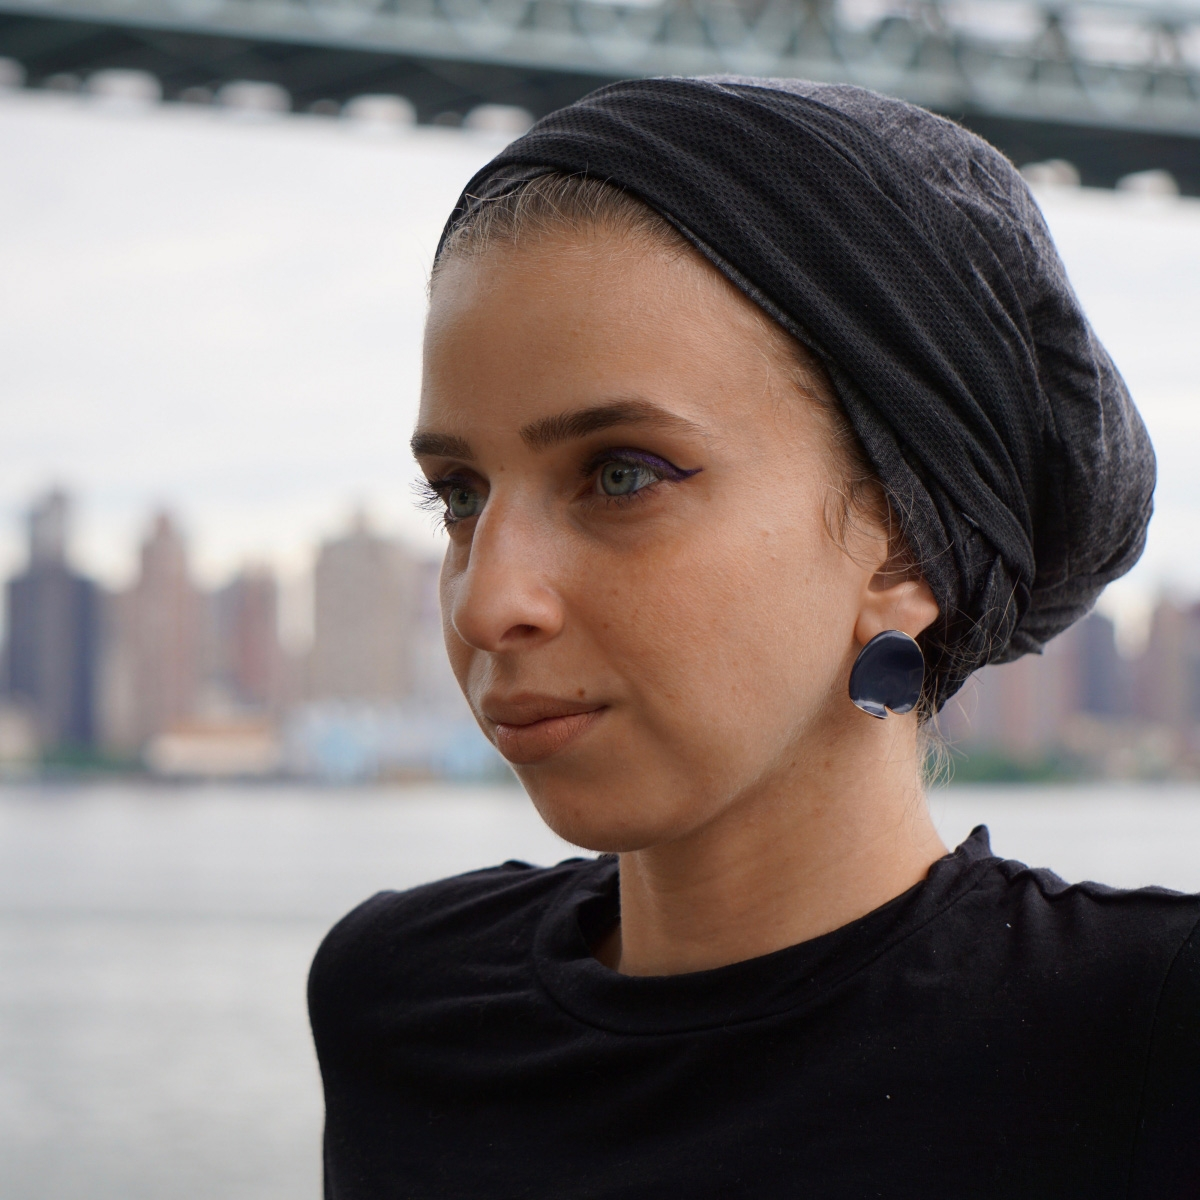 Profile of Jenna Hamed with headscarf